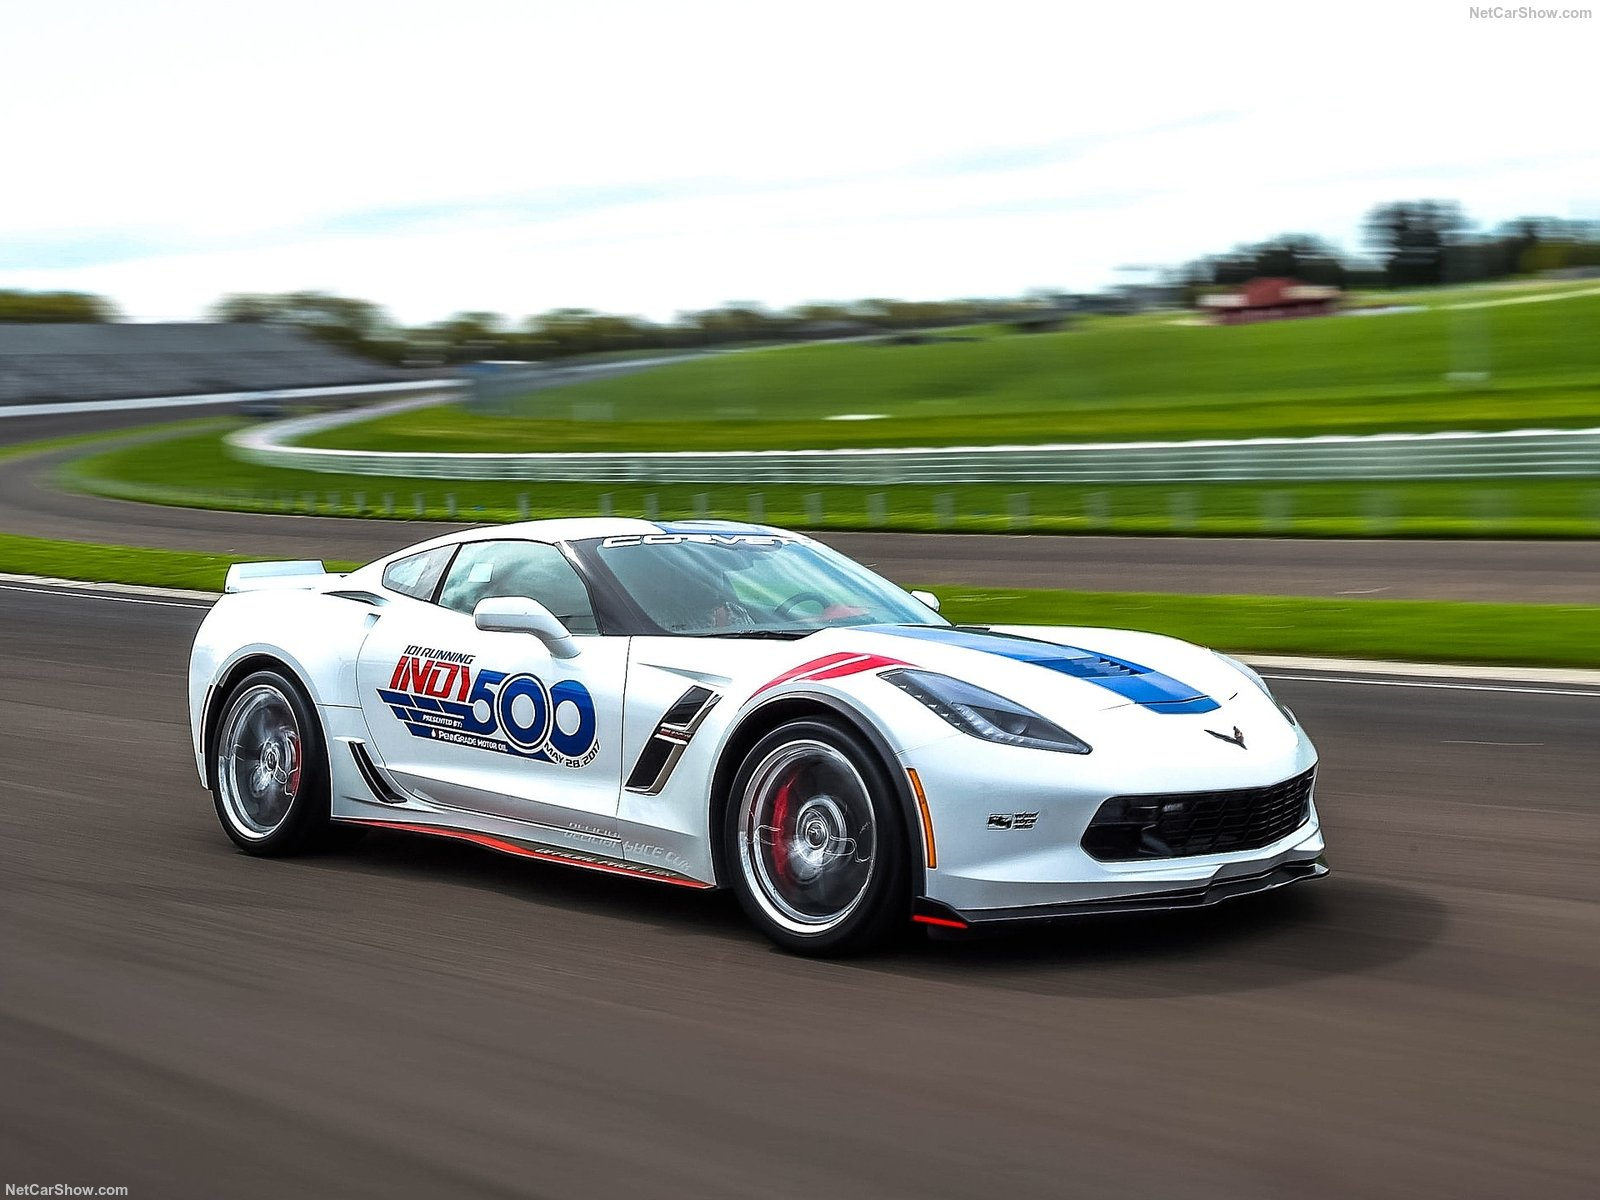 chevrolet corvette grand sport indy 500 pacecar 2017 photoscar. Black Bedroom Furniture Sets. Home Design Ideas